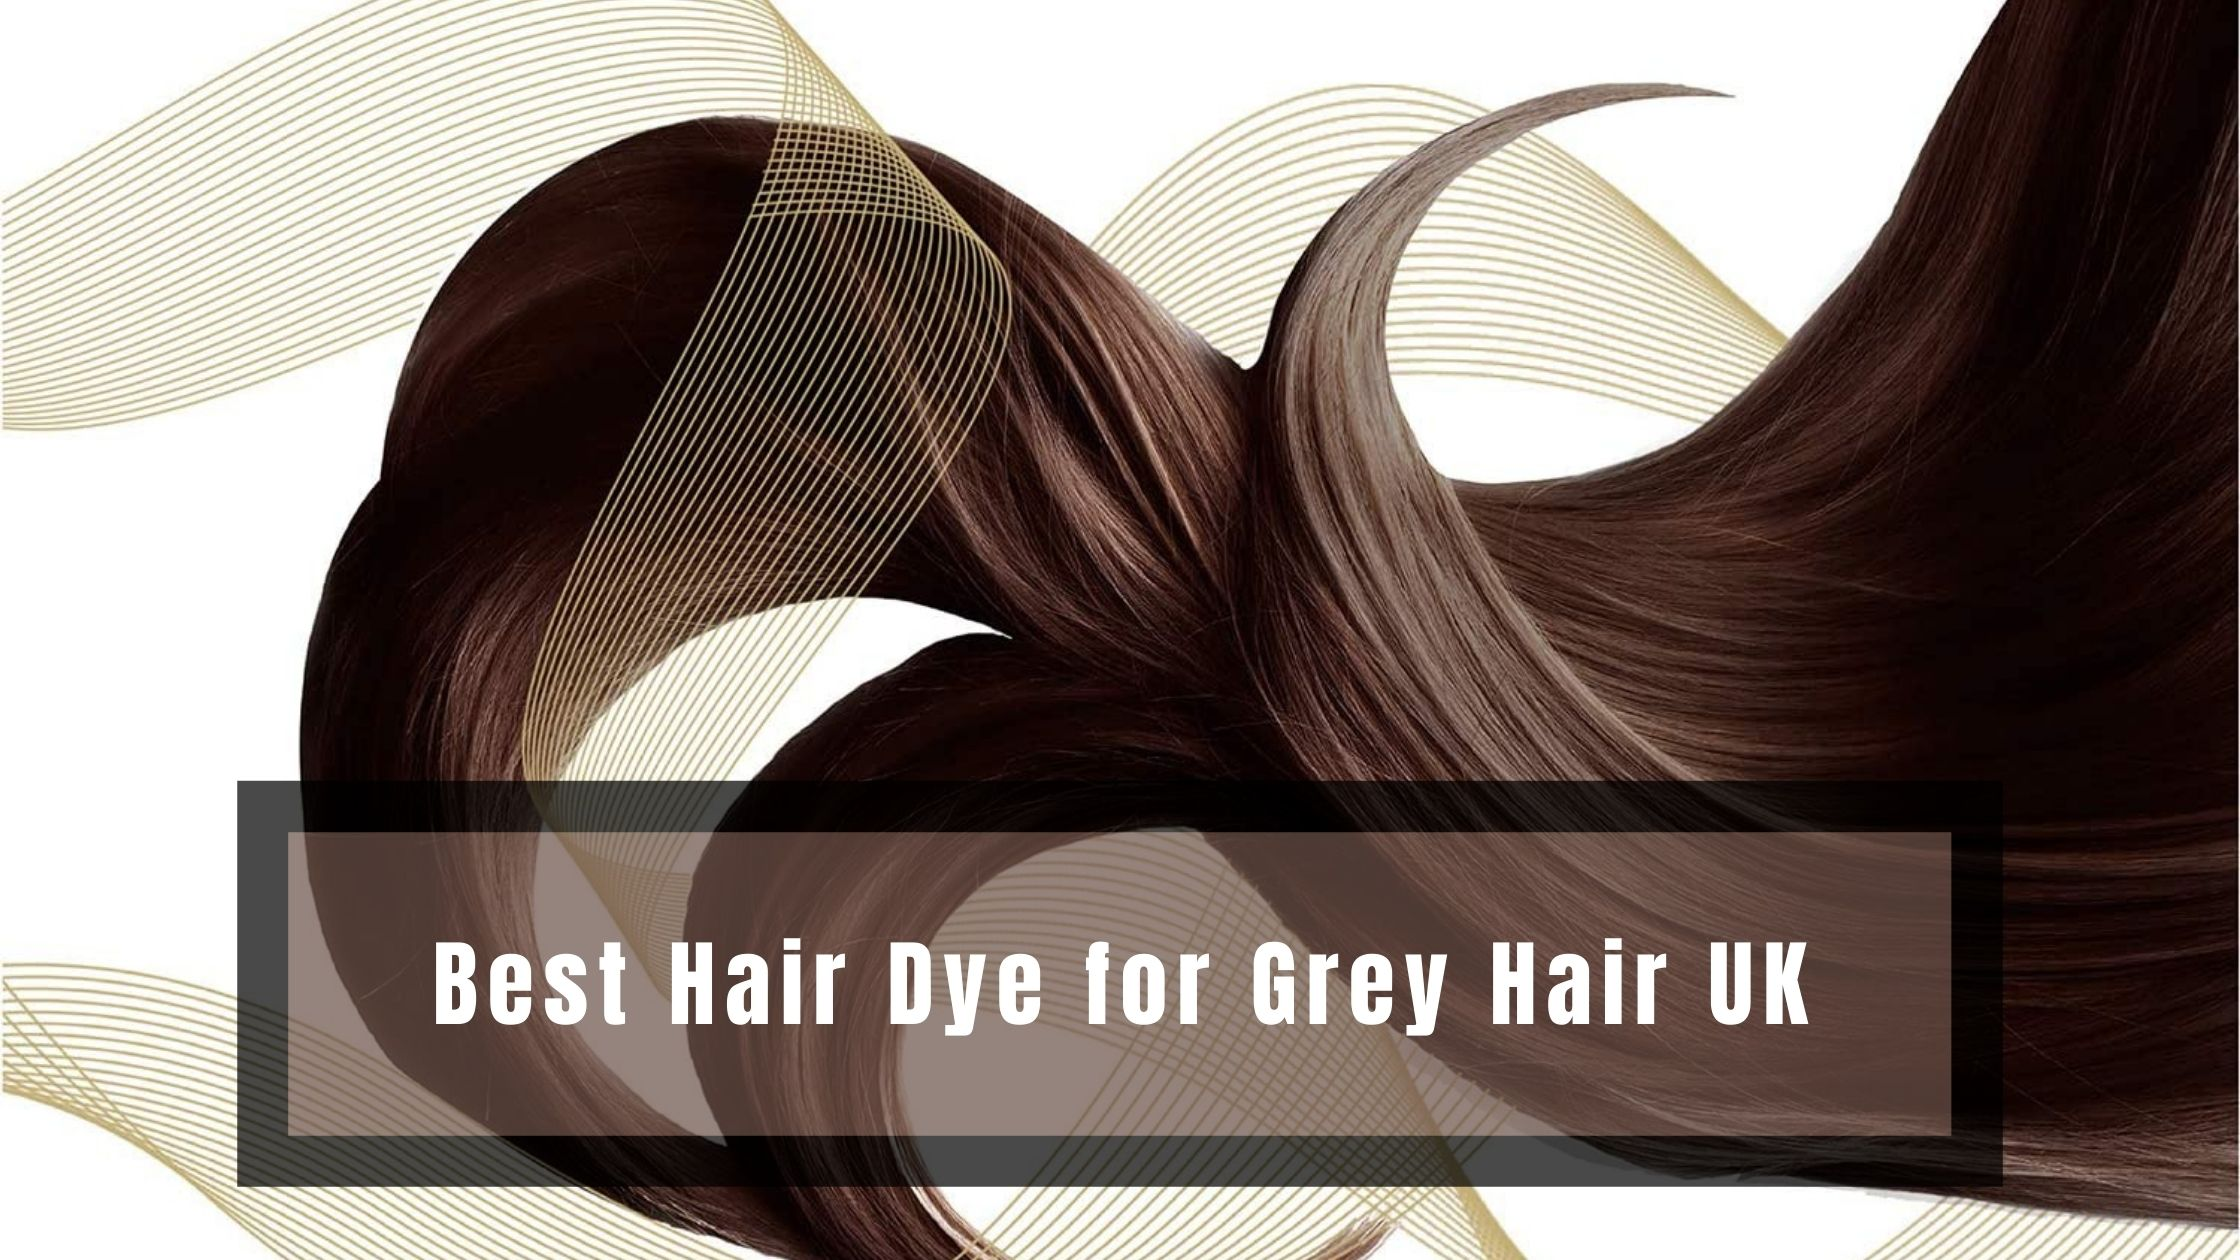 Best Hair Dye for Grey Hair UK